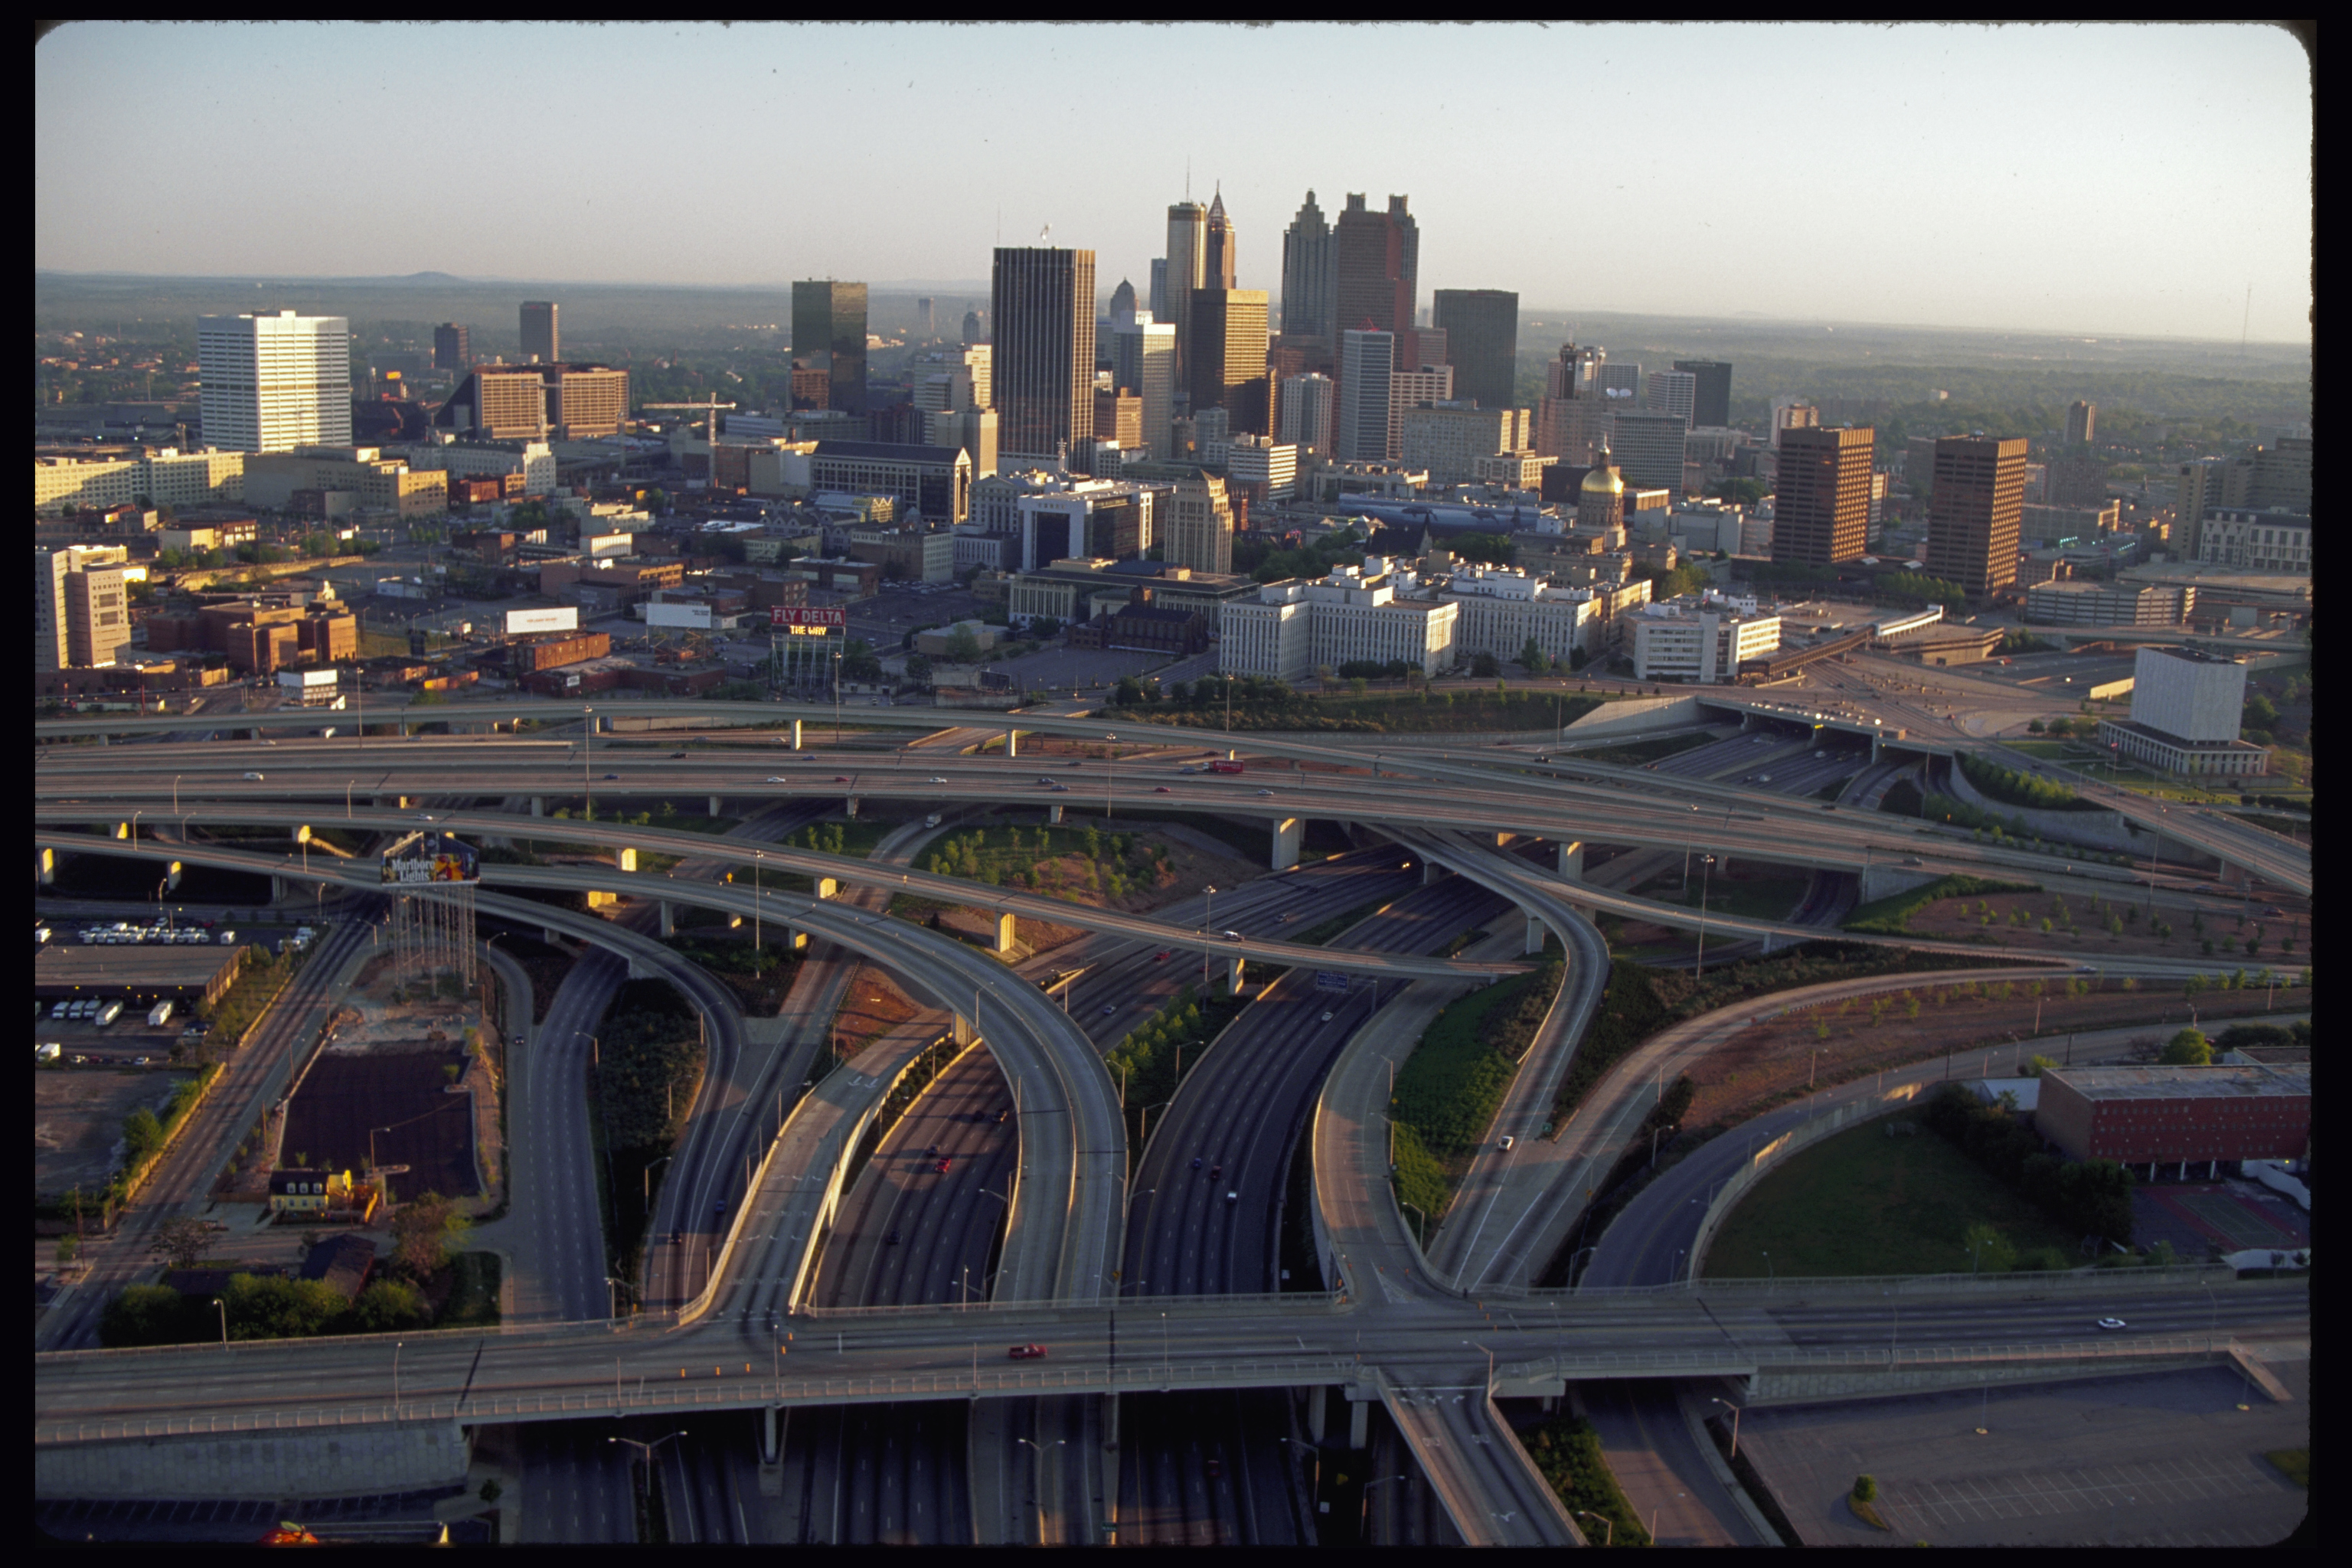 Downtown Atlanta and Freeways